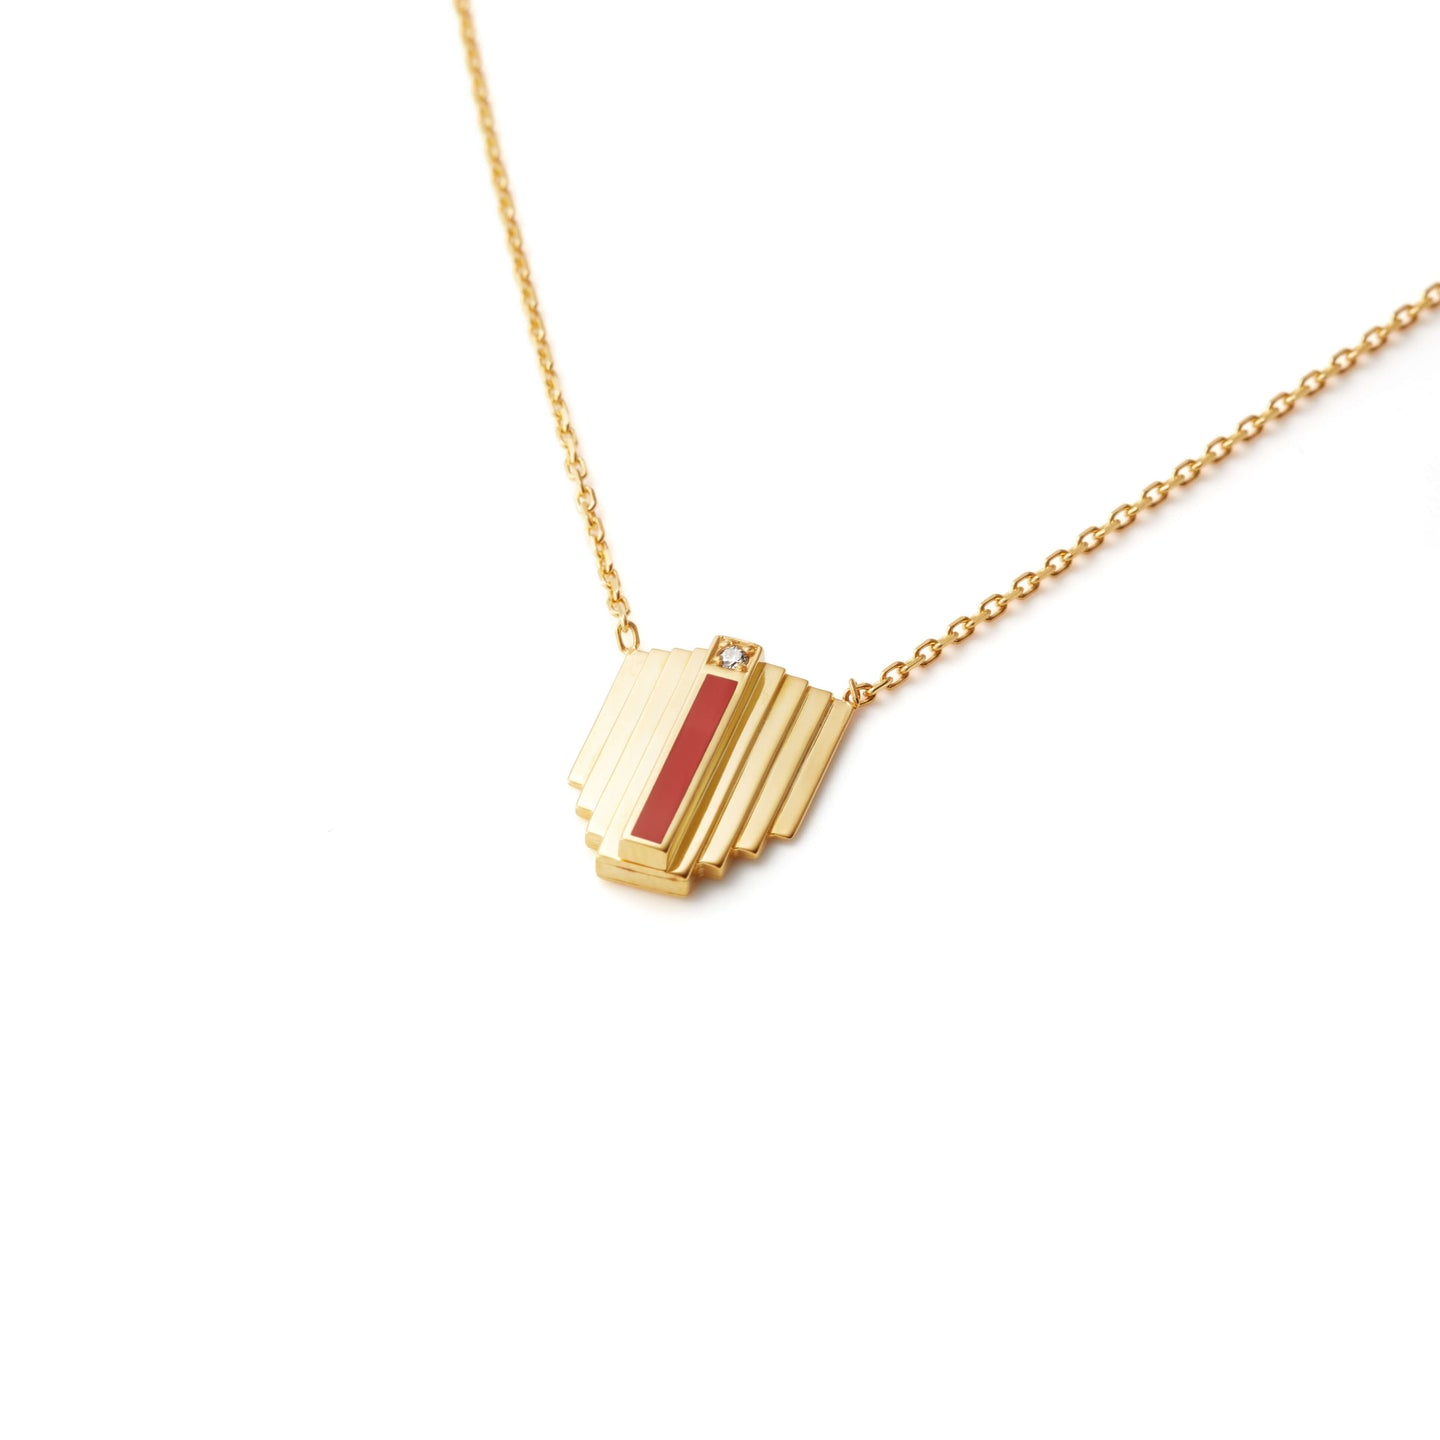 Gold Corbusier Diamond Necklace with Coral Enamel